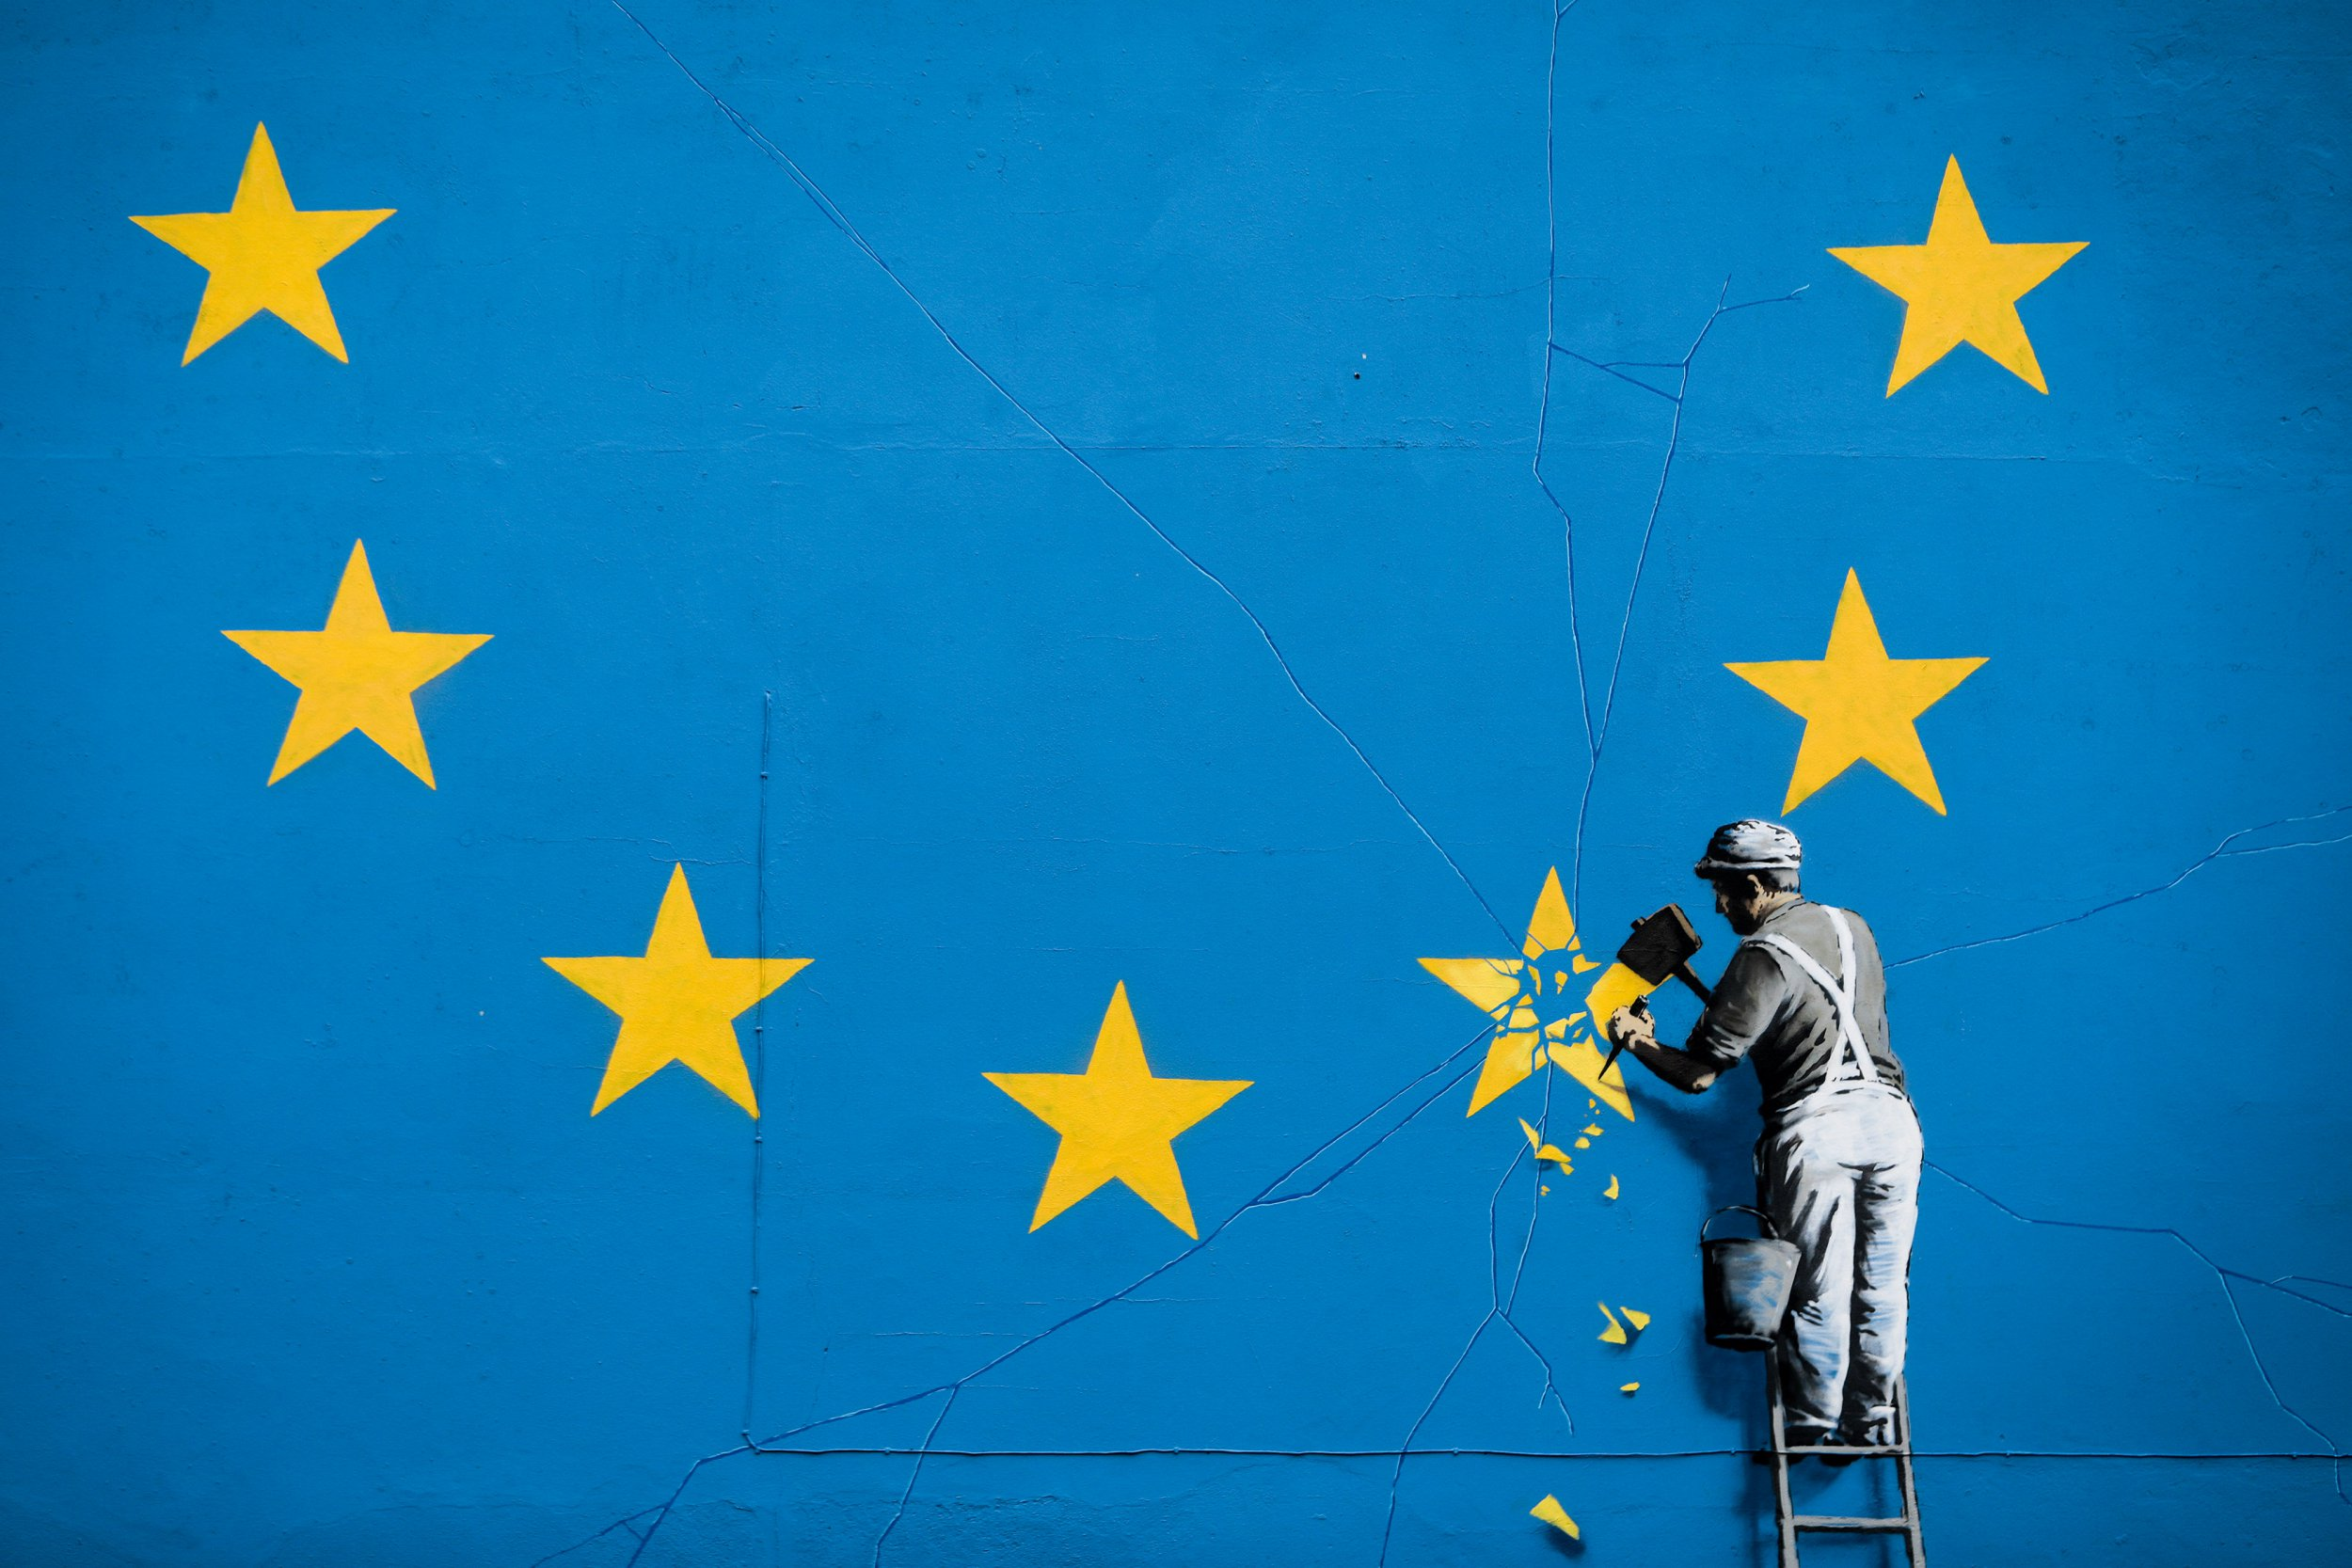 Who is Banksy and what are his most famous works of art?